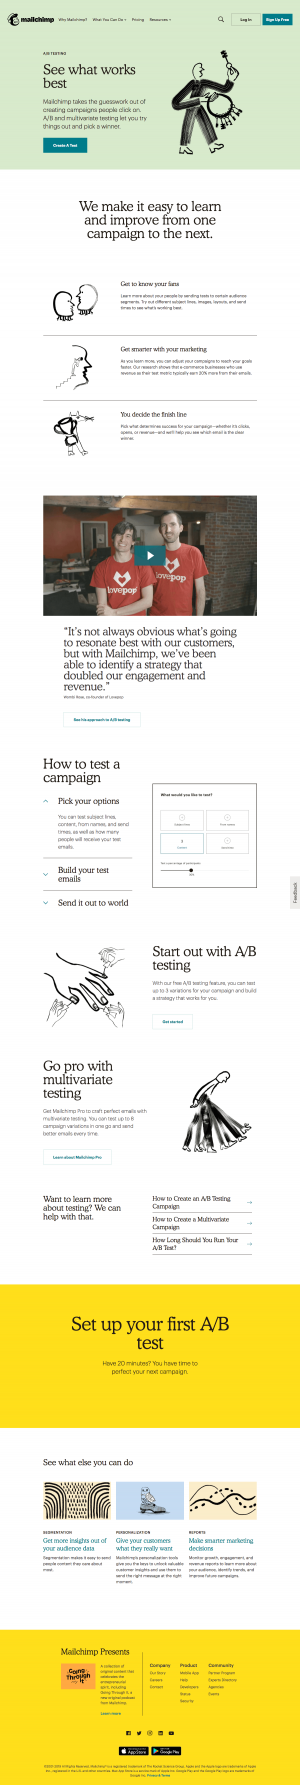 Mailchimp - Features page 2